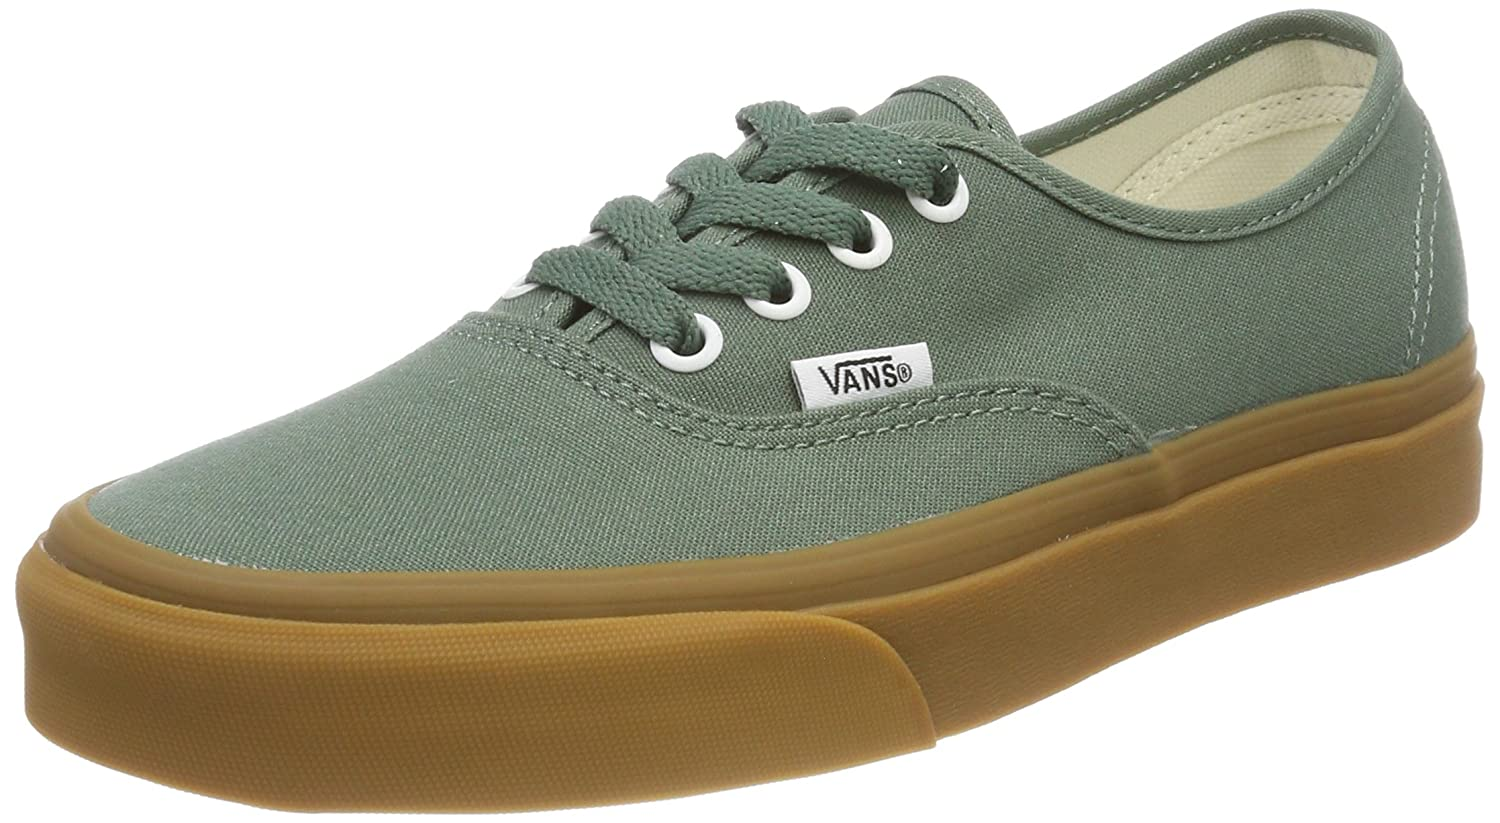 Vans Authentic B074HCG9PQ 10.5 M US Women / 9 M US Men|Green